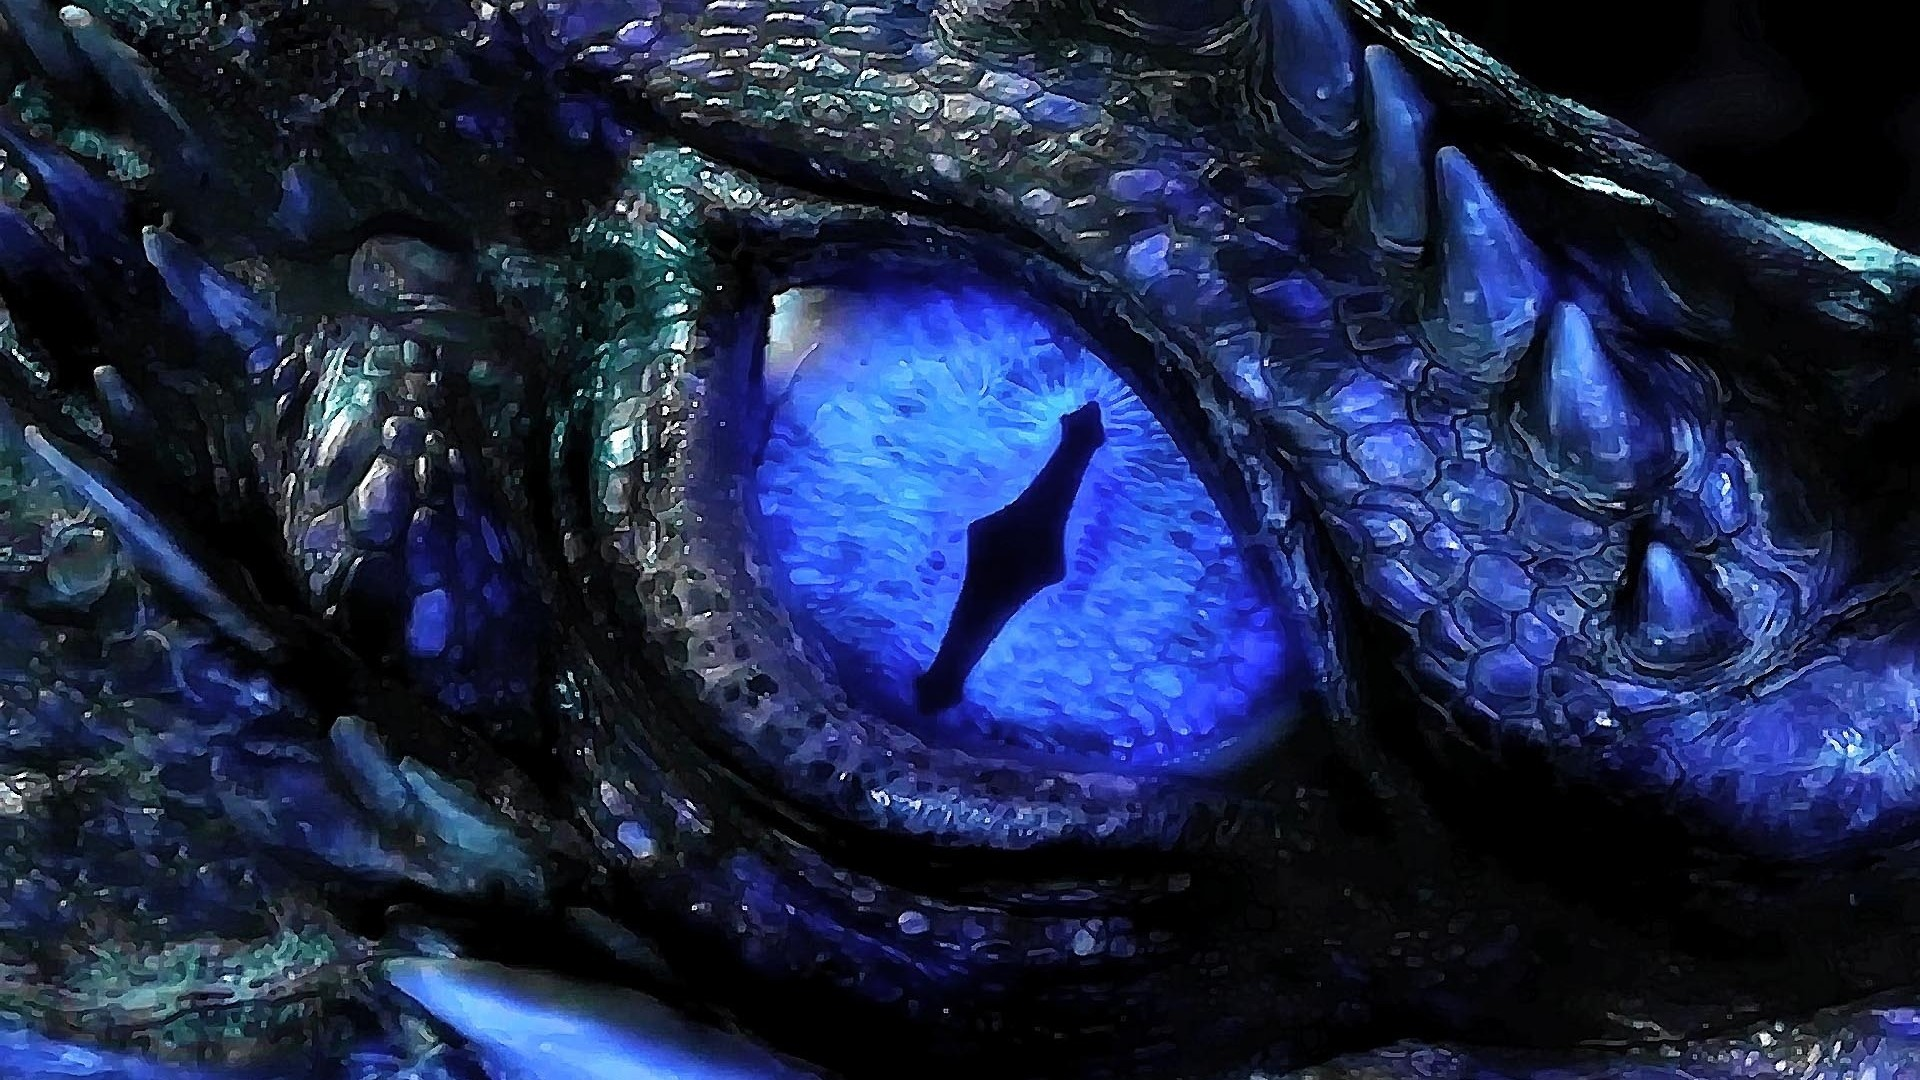 Dragon eye wallpaper 62 images - Dragon backgrounds 1920x1080 ...